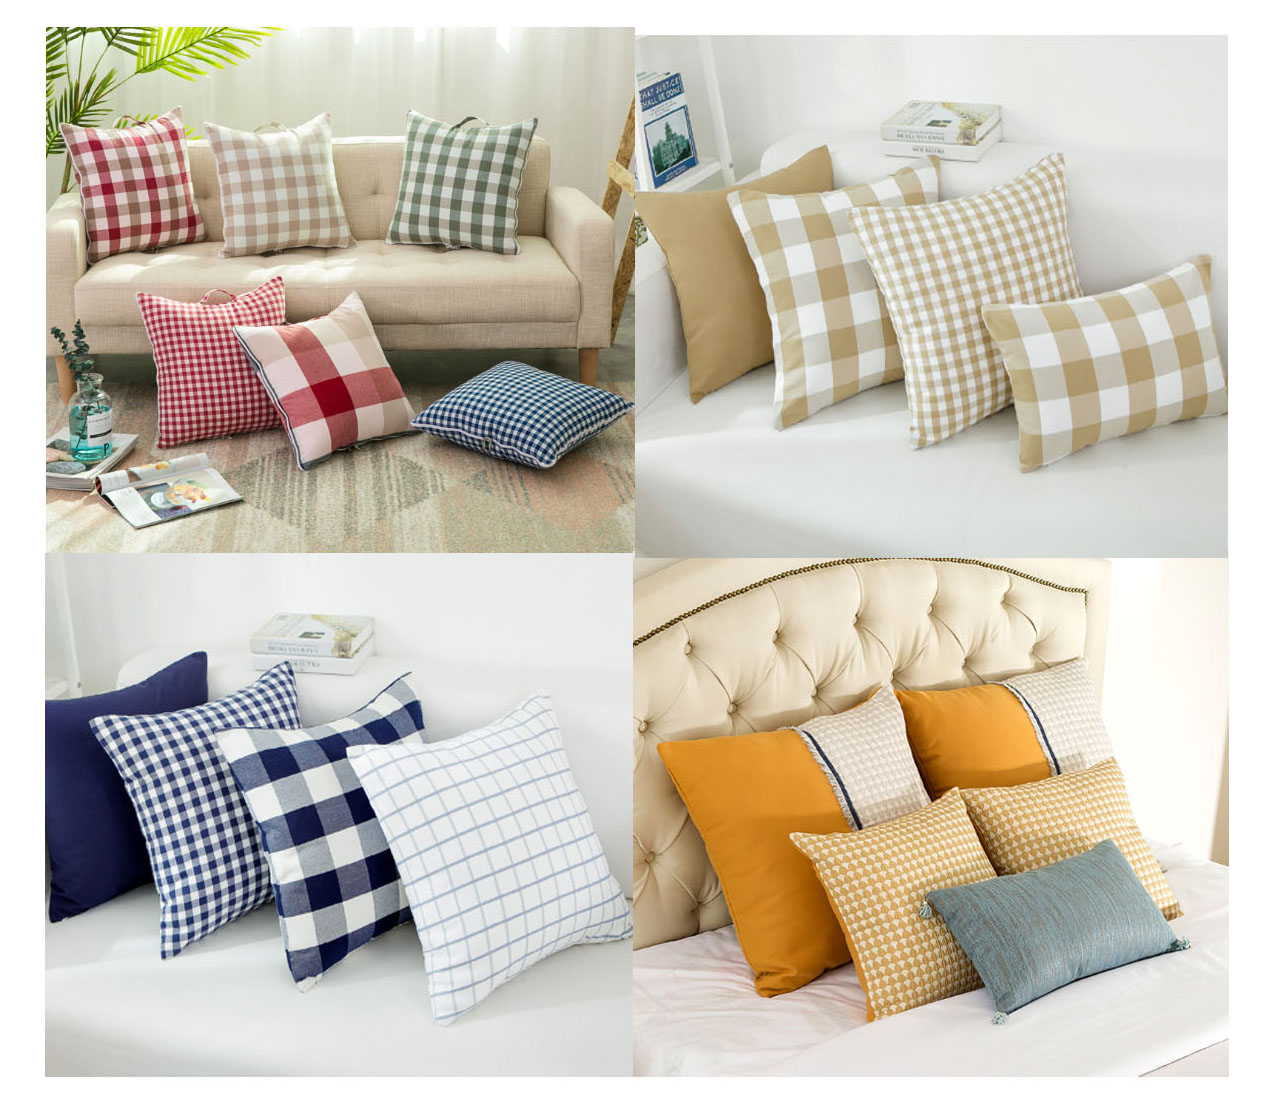 PLHLI New Style Sofa knitted Throw Pillows Heart Shape Pillow Love Knotted Cushion